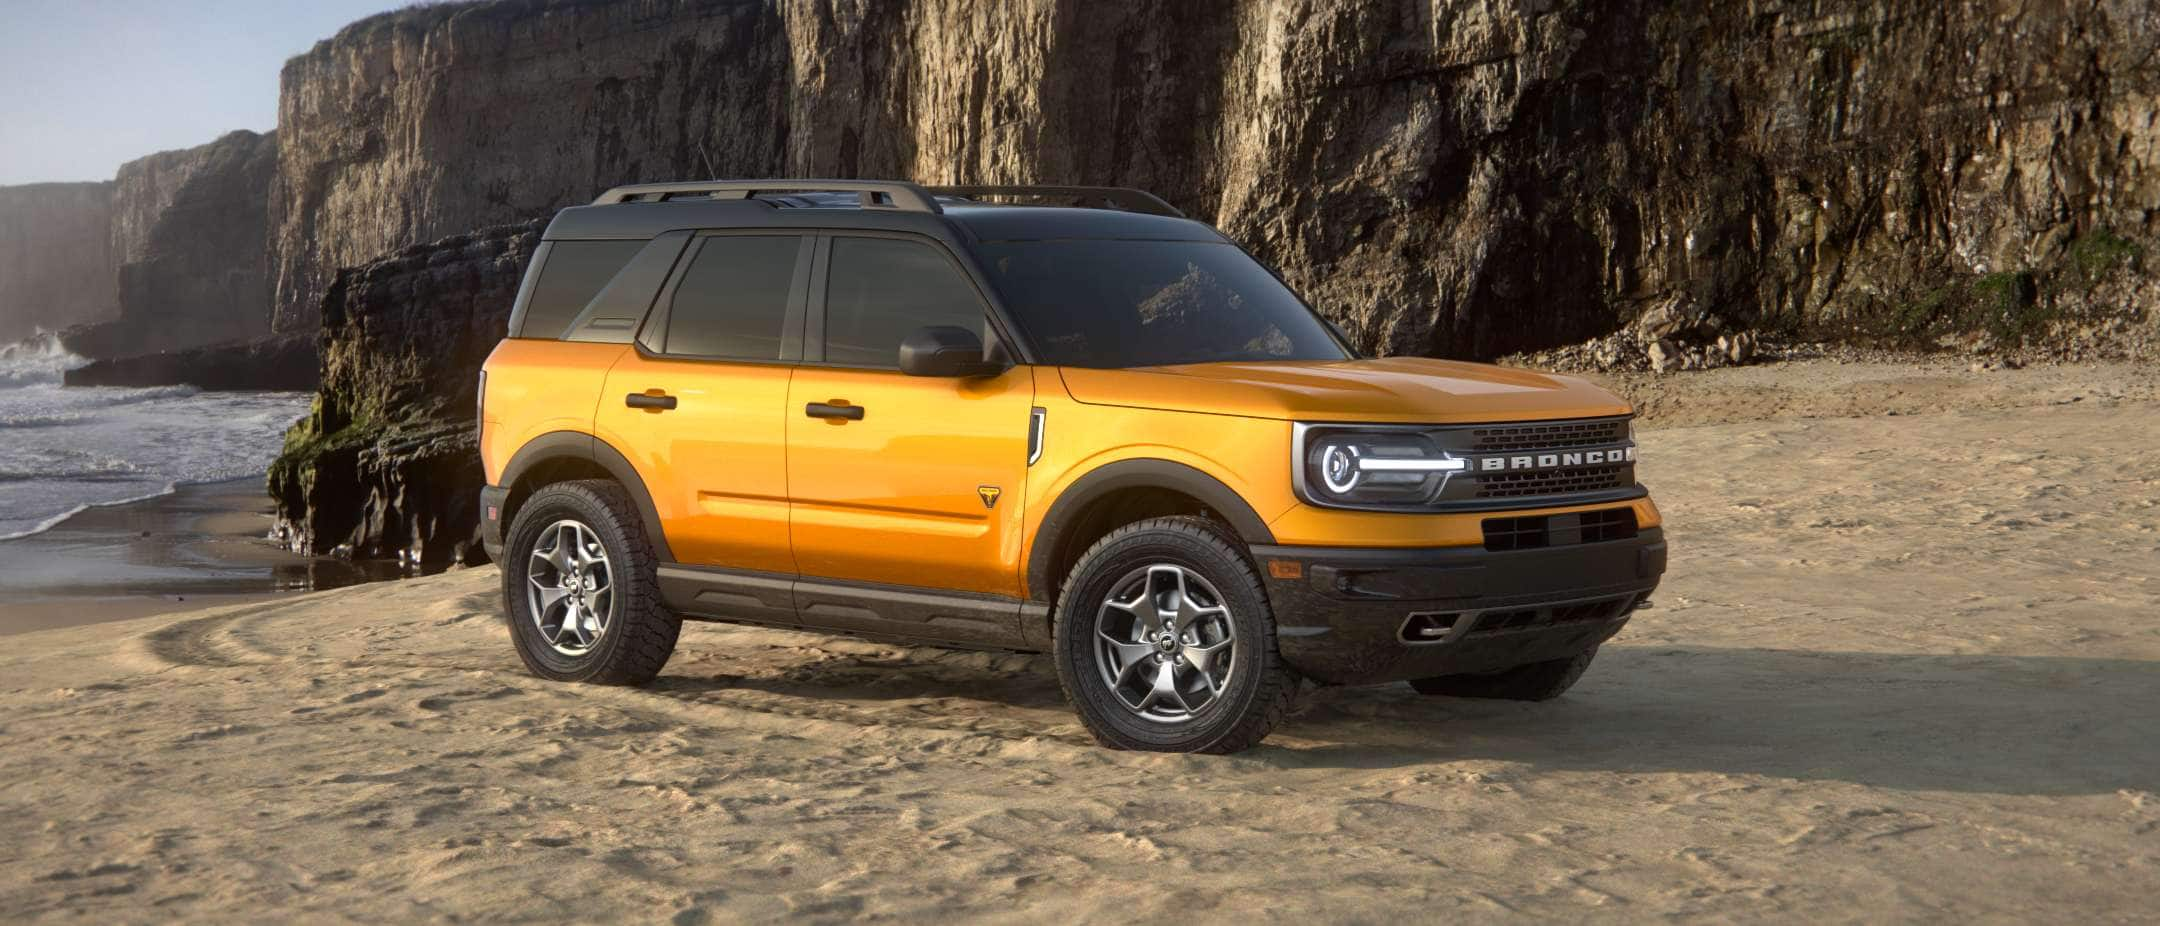 2021 Ford Bronco Sport exterior colors